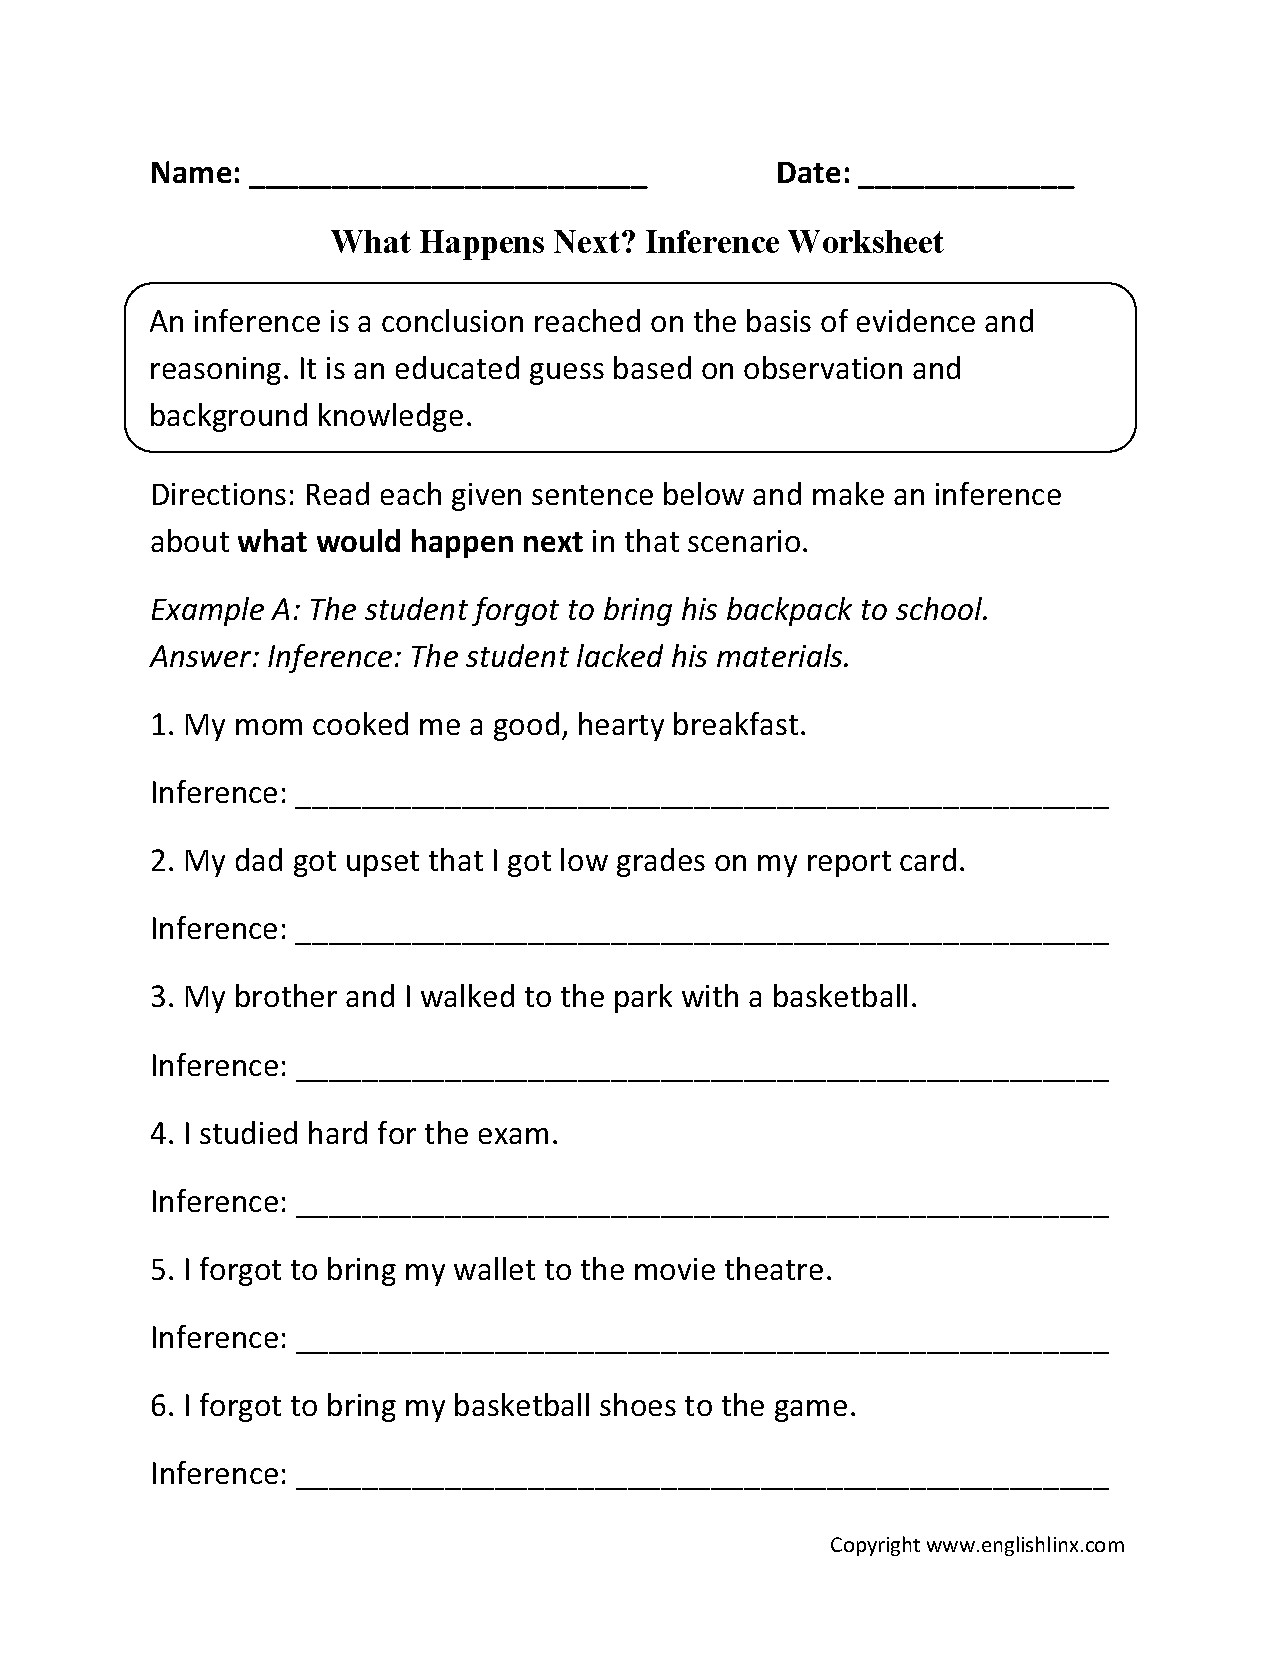 Inference Worksheets Grade 3 Making Inferences Worksheets Grade 3